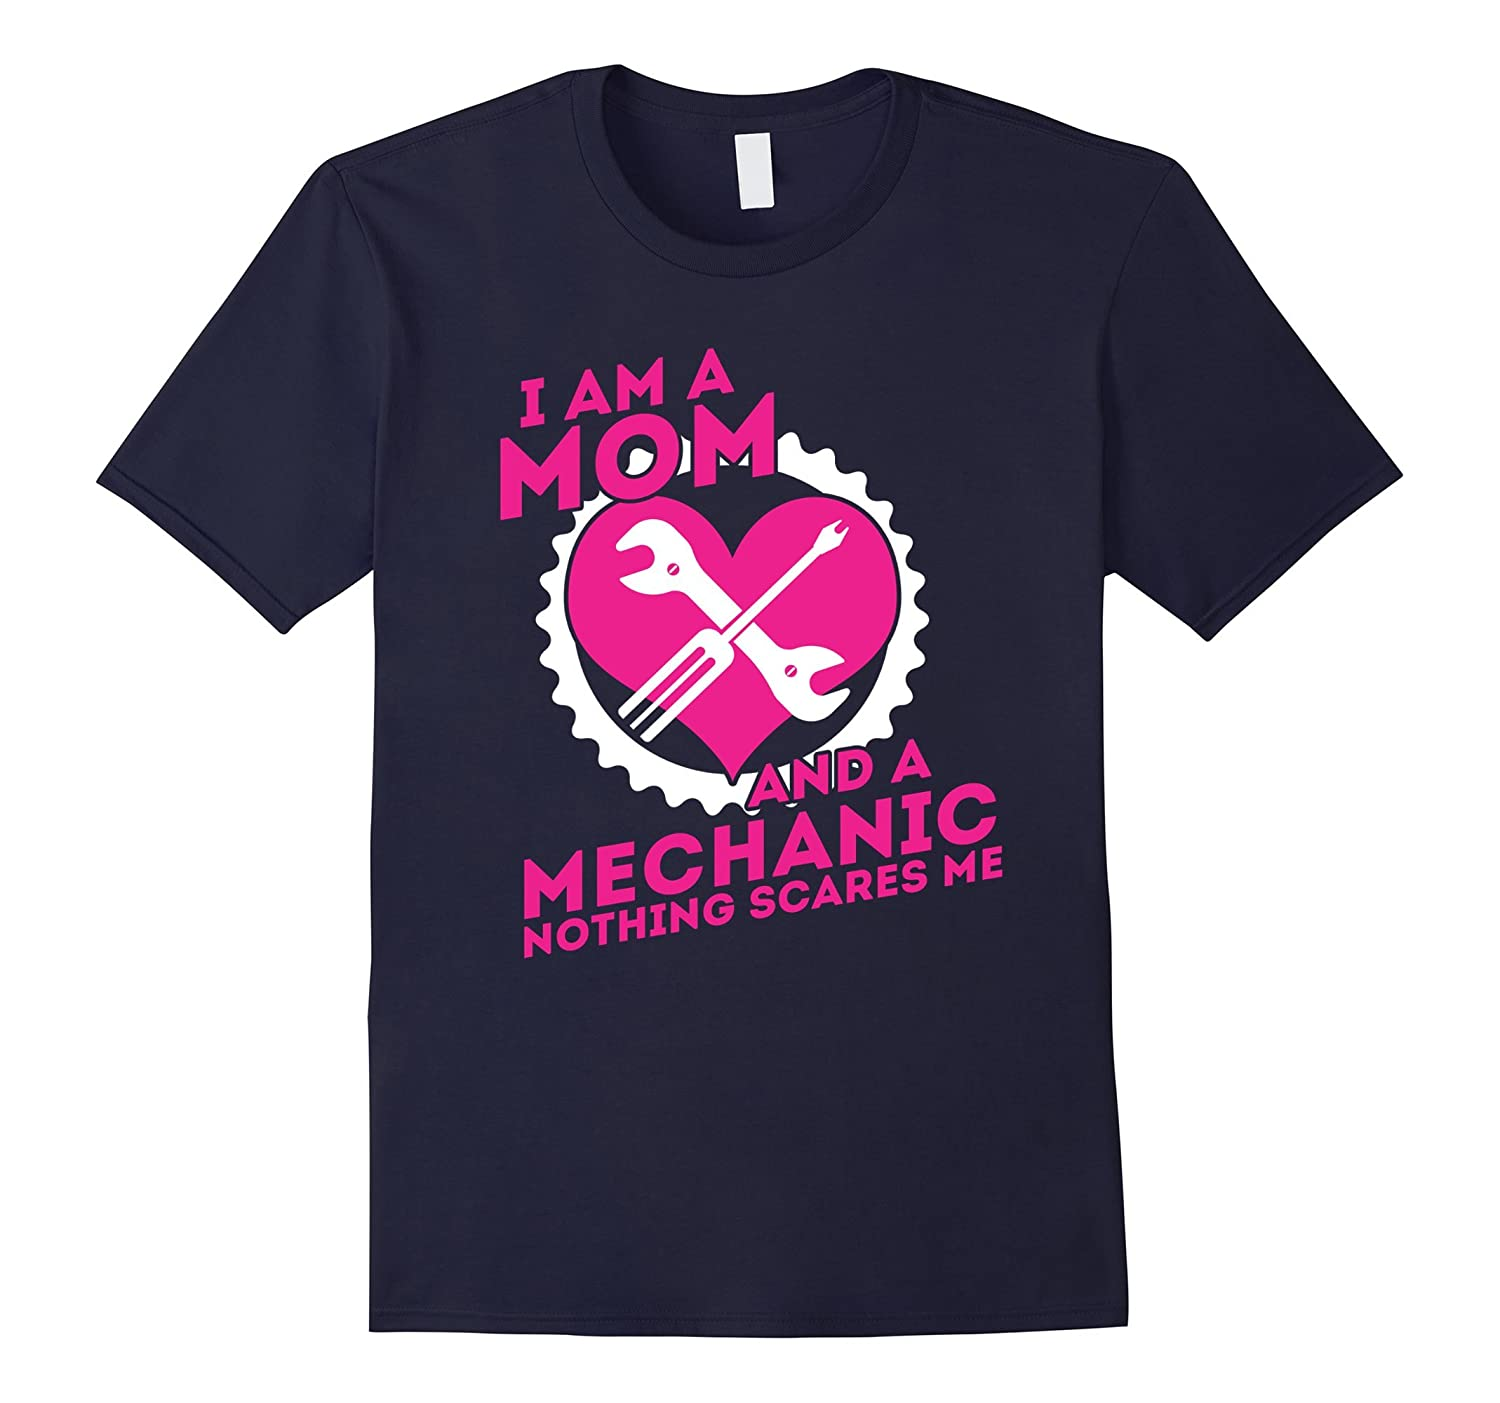 Being a Mom and a Mechanic - Funny Family Tshirts for Mother-TH